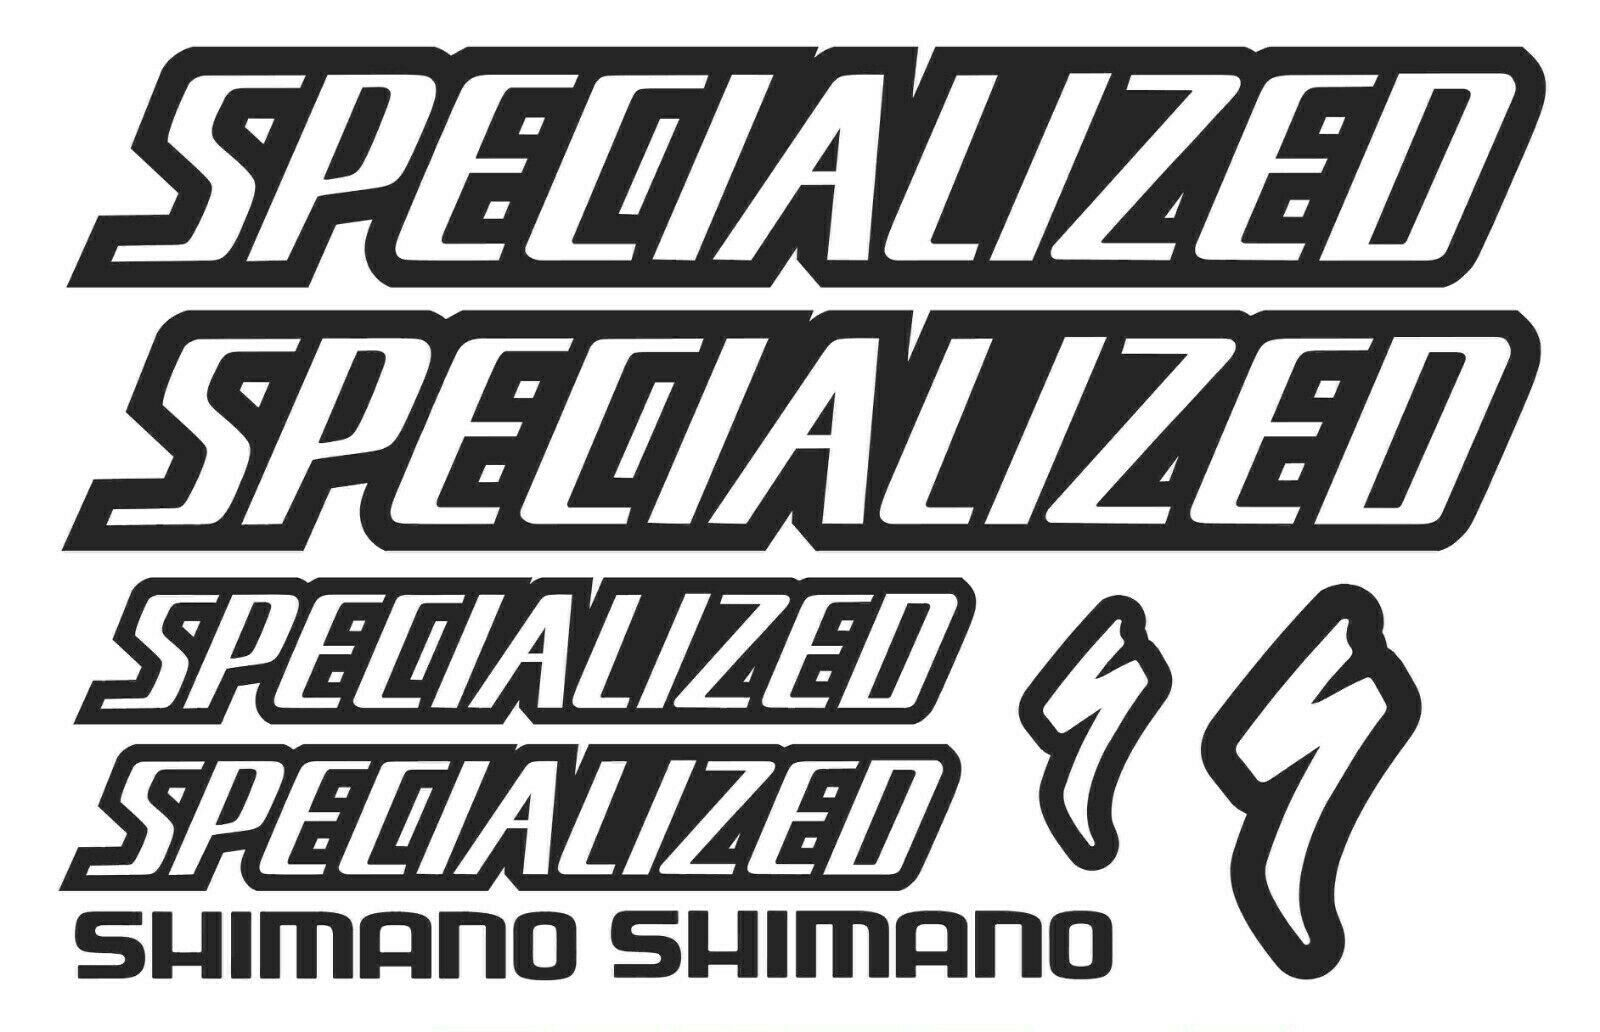 Gt bikes replacement vinyl decal graphic sticker set mtb dh xc bike 1 of 2free shipping